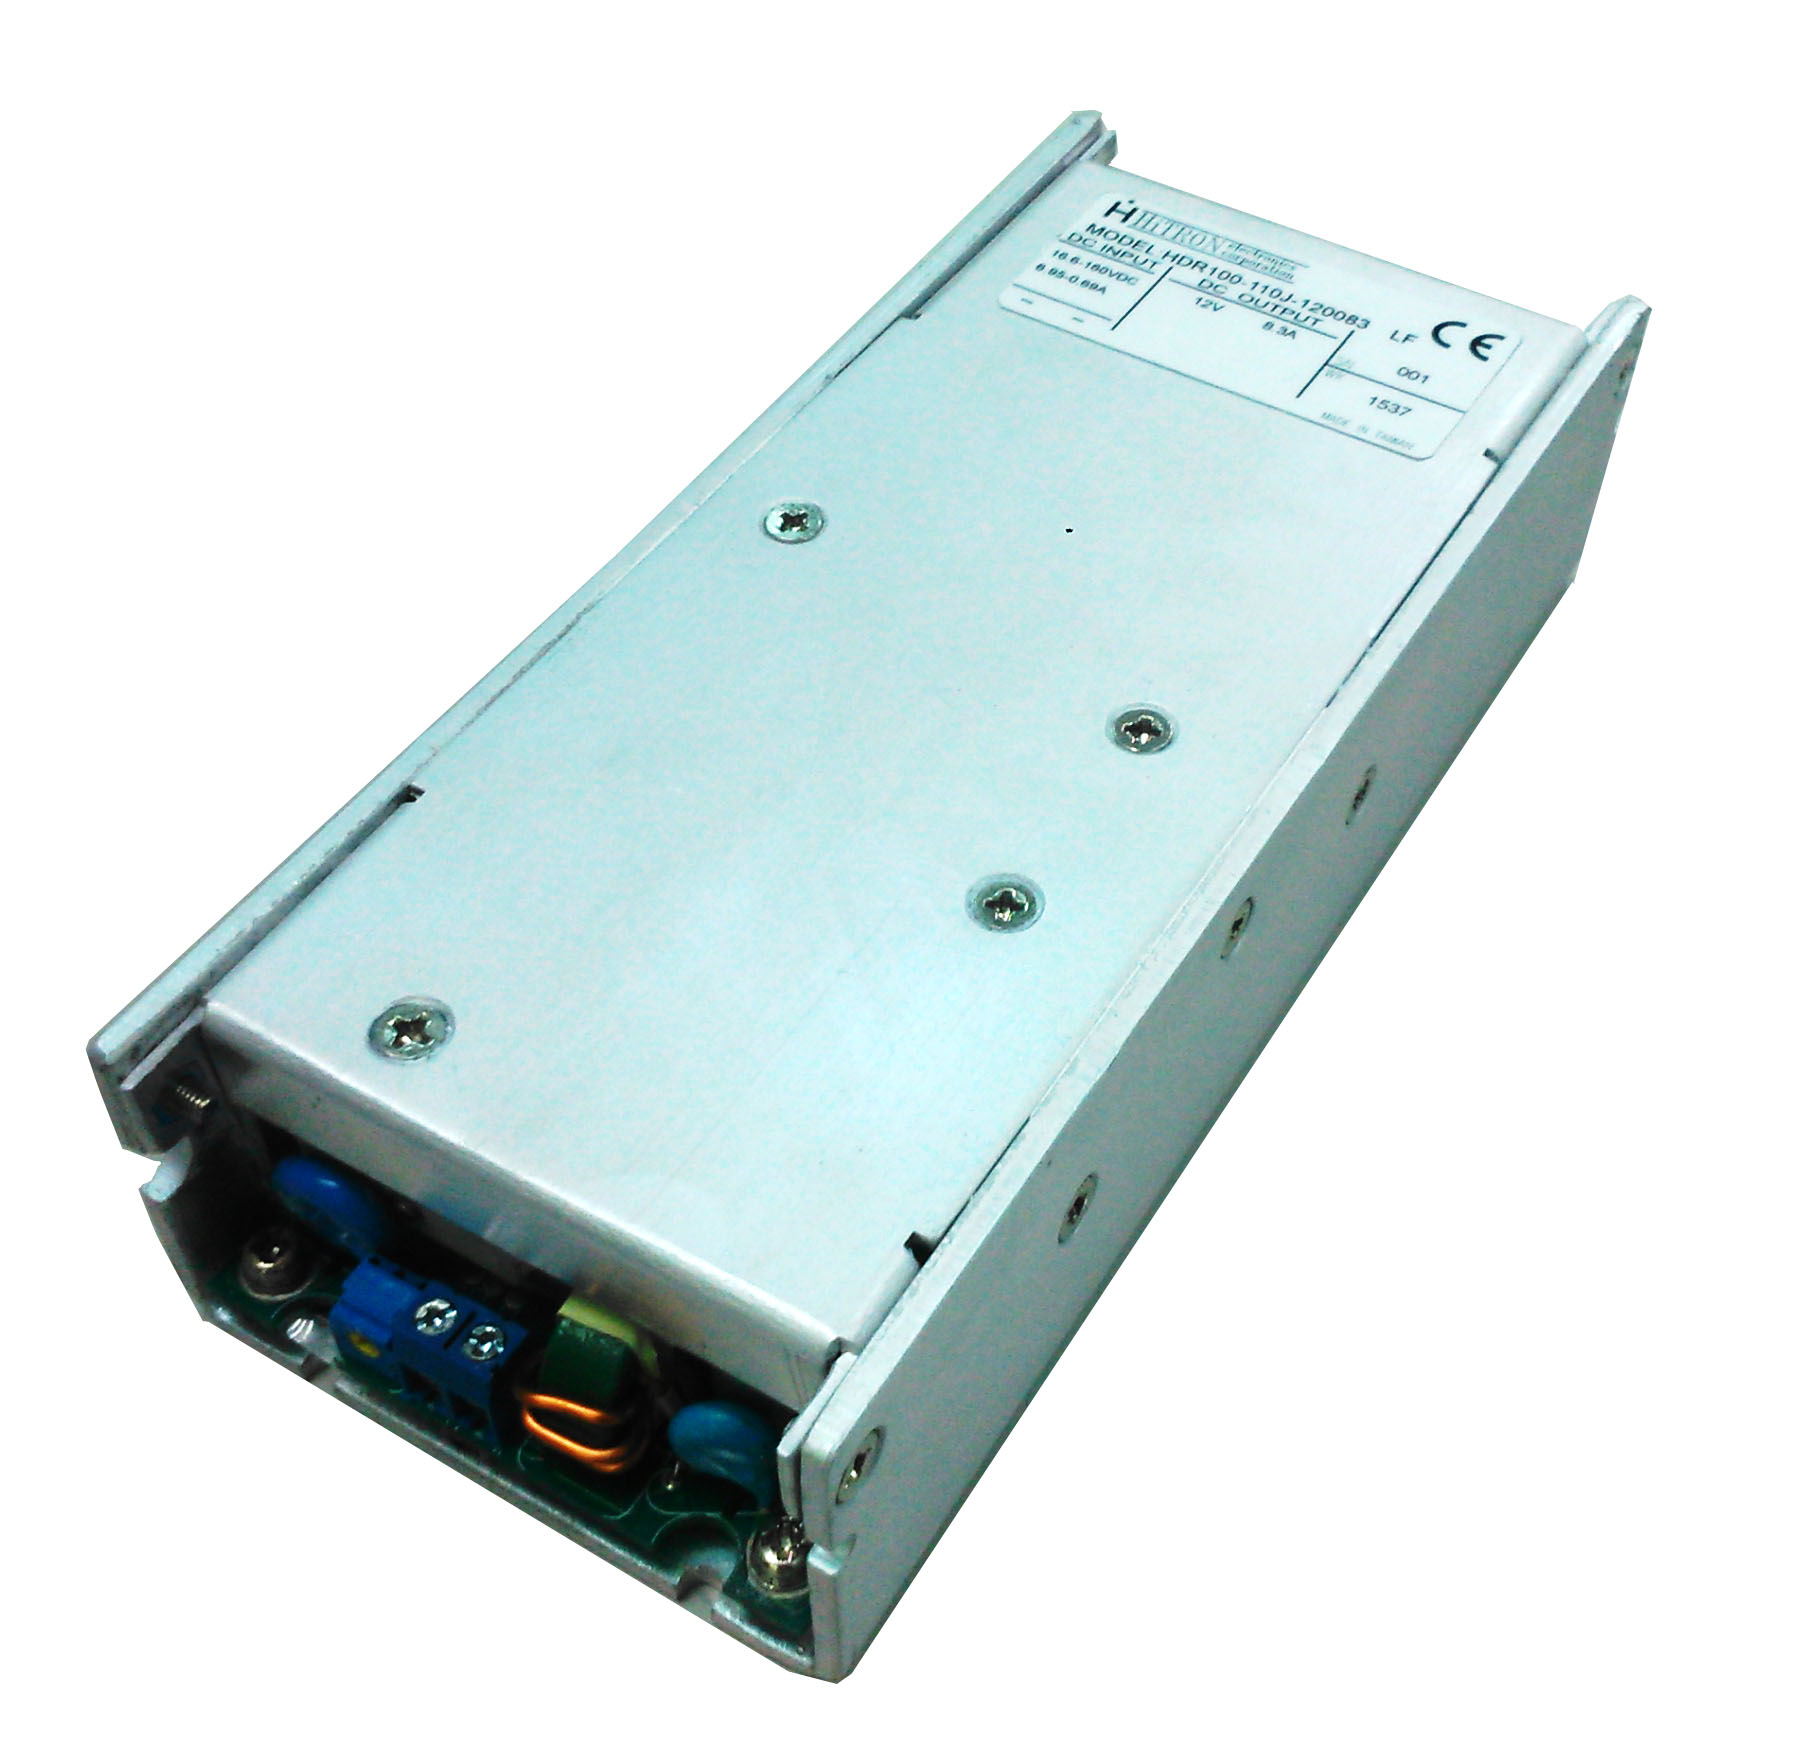 Railway Application Power Supply | HITRON ELECTRONICS CO , LTD